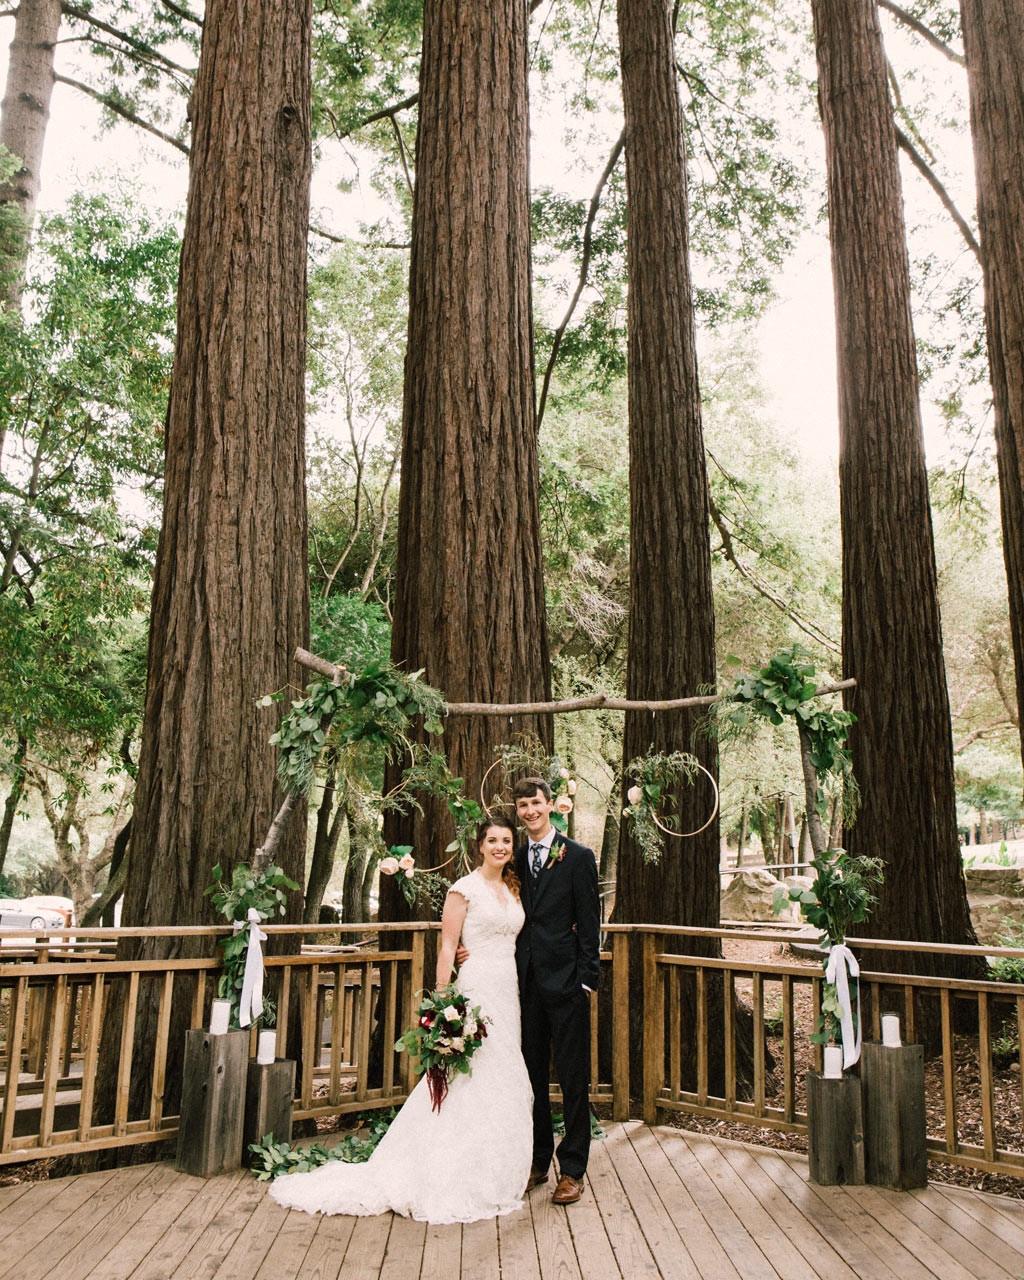 Sanborn park Wedding saratoga California photographer